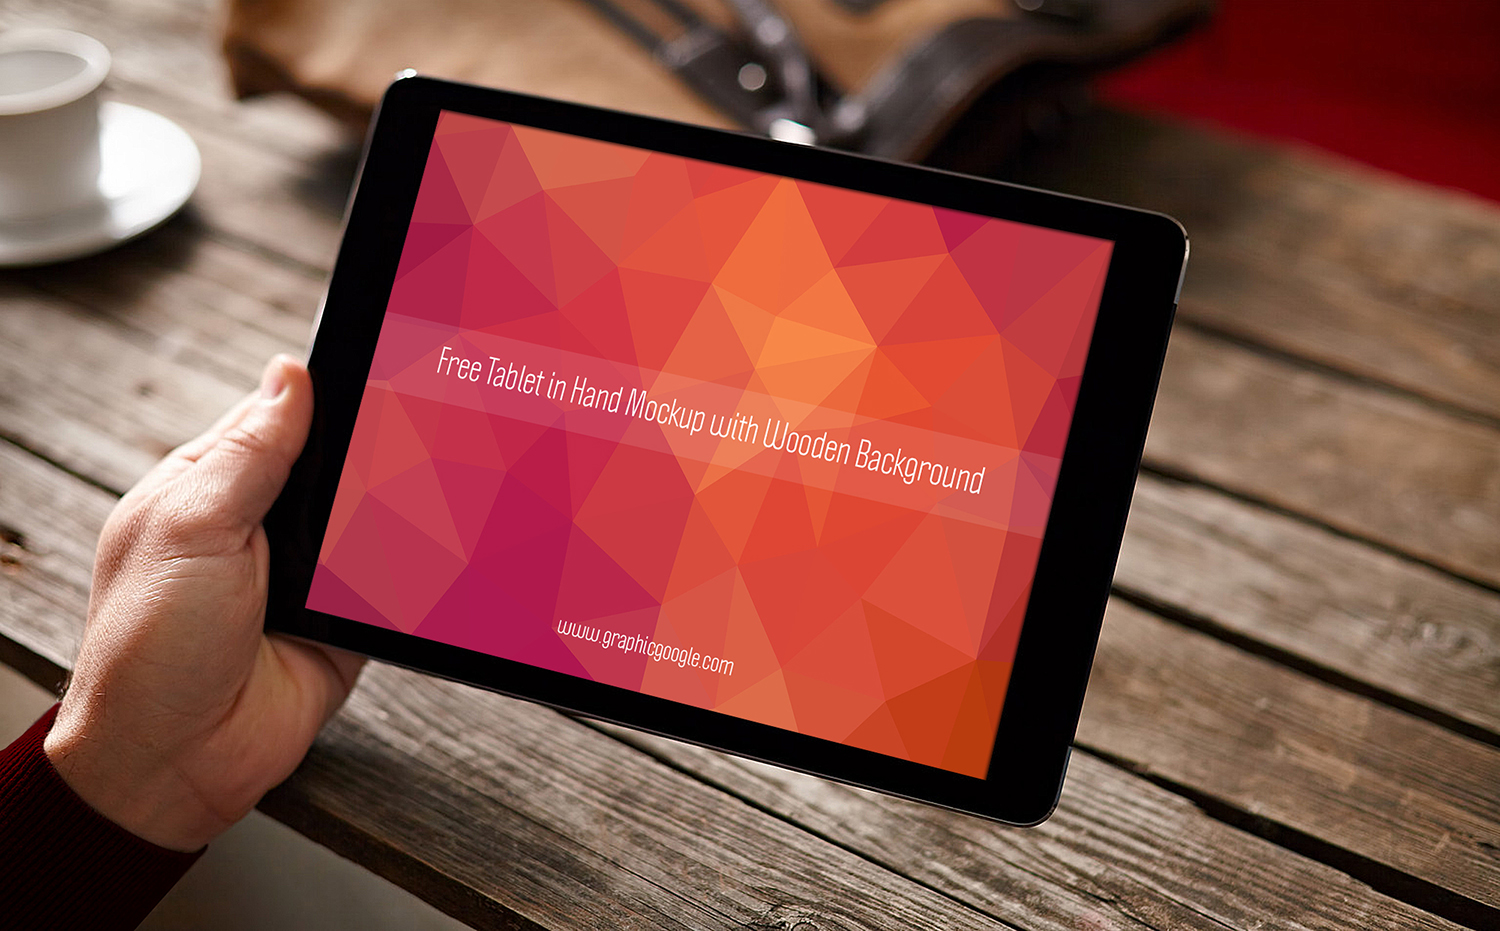 Free Tablet in Hand Mockup with Wooden Background-Preview Image